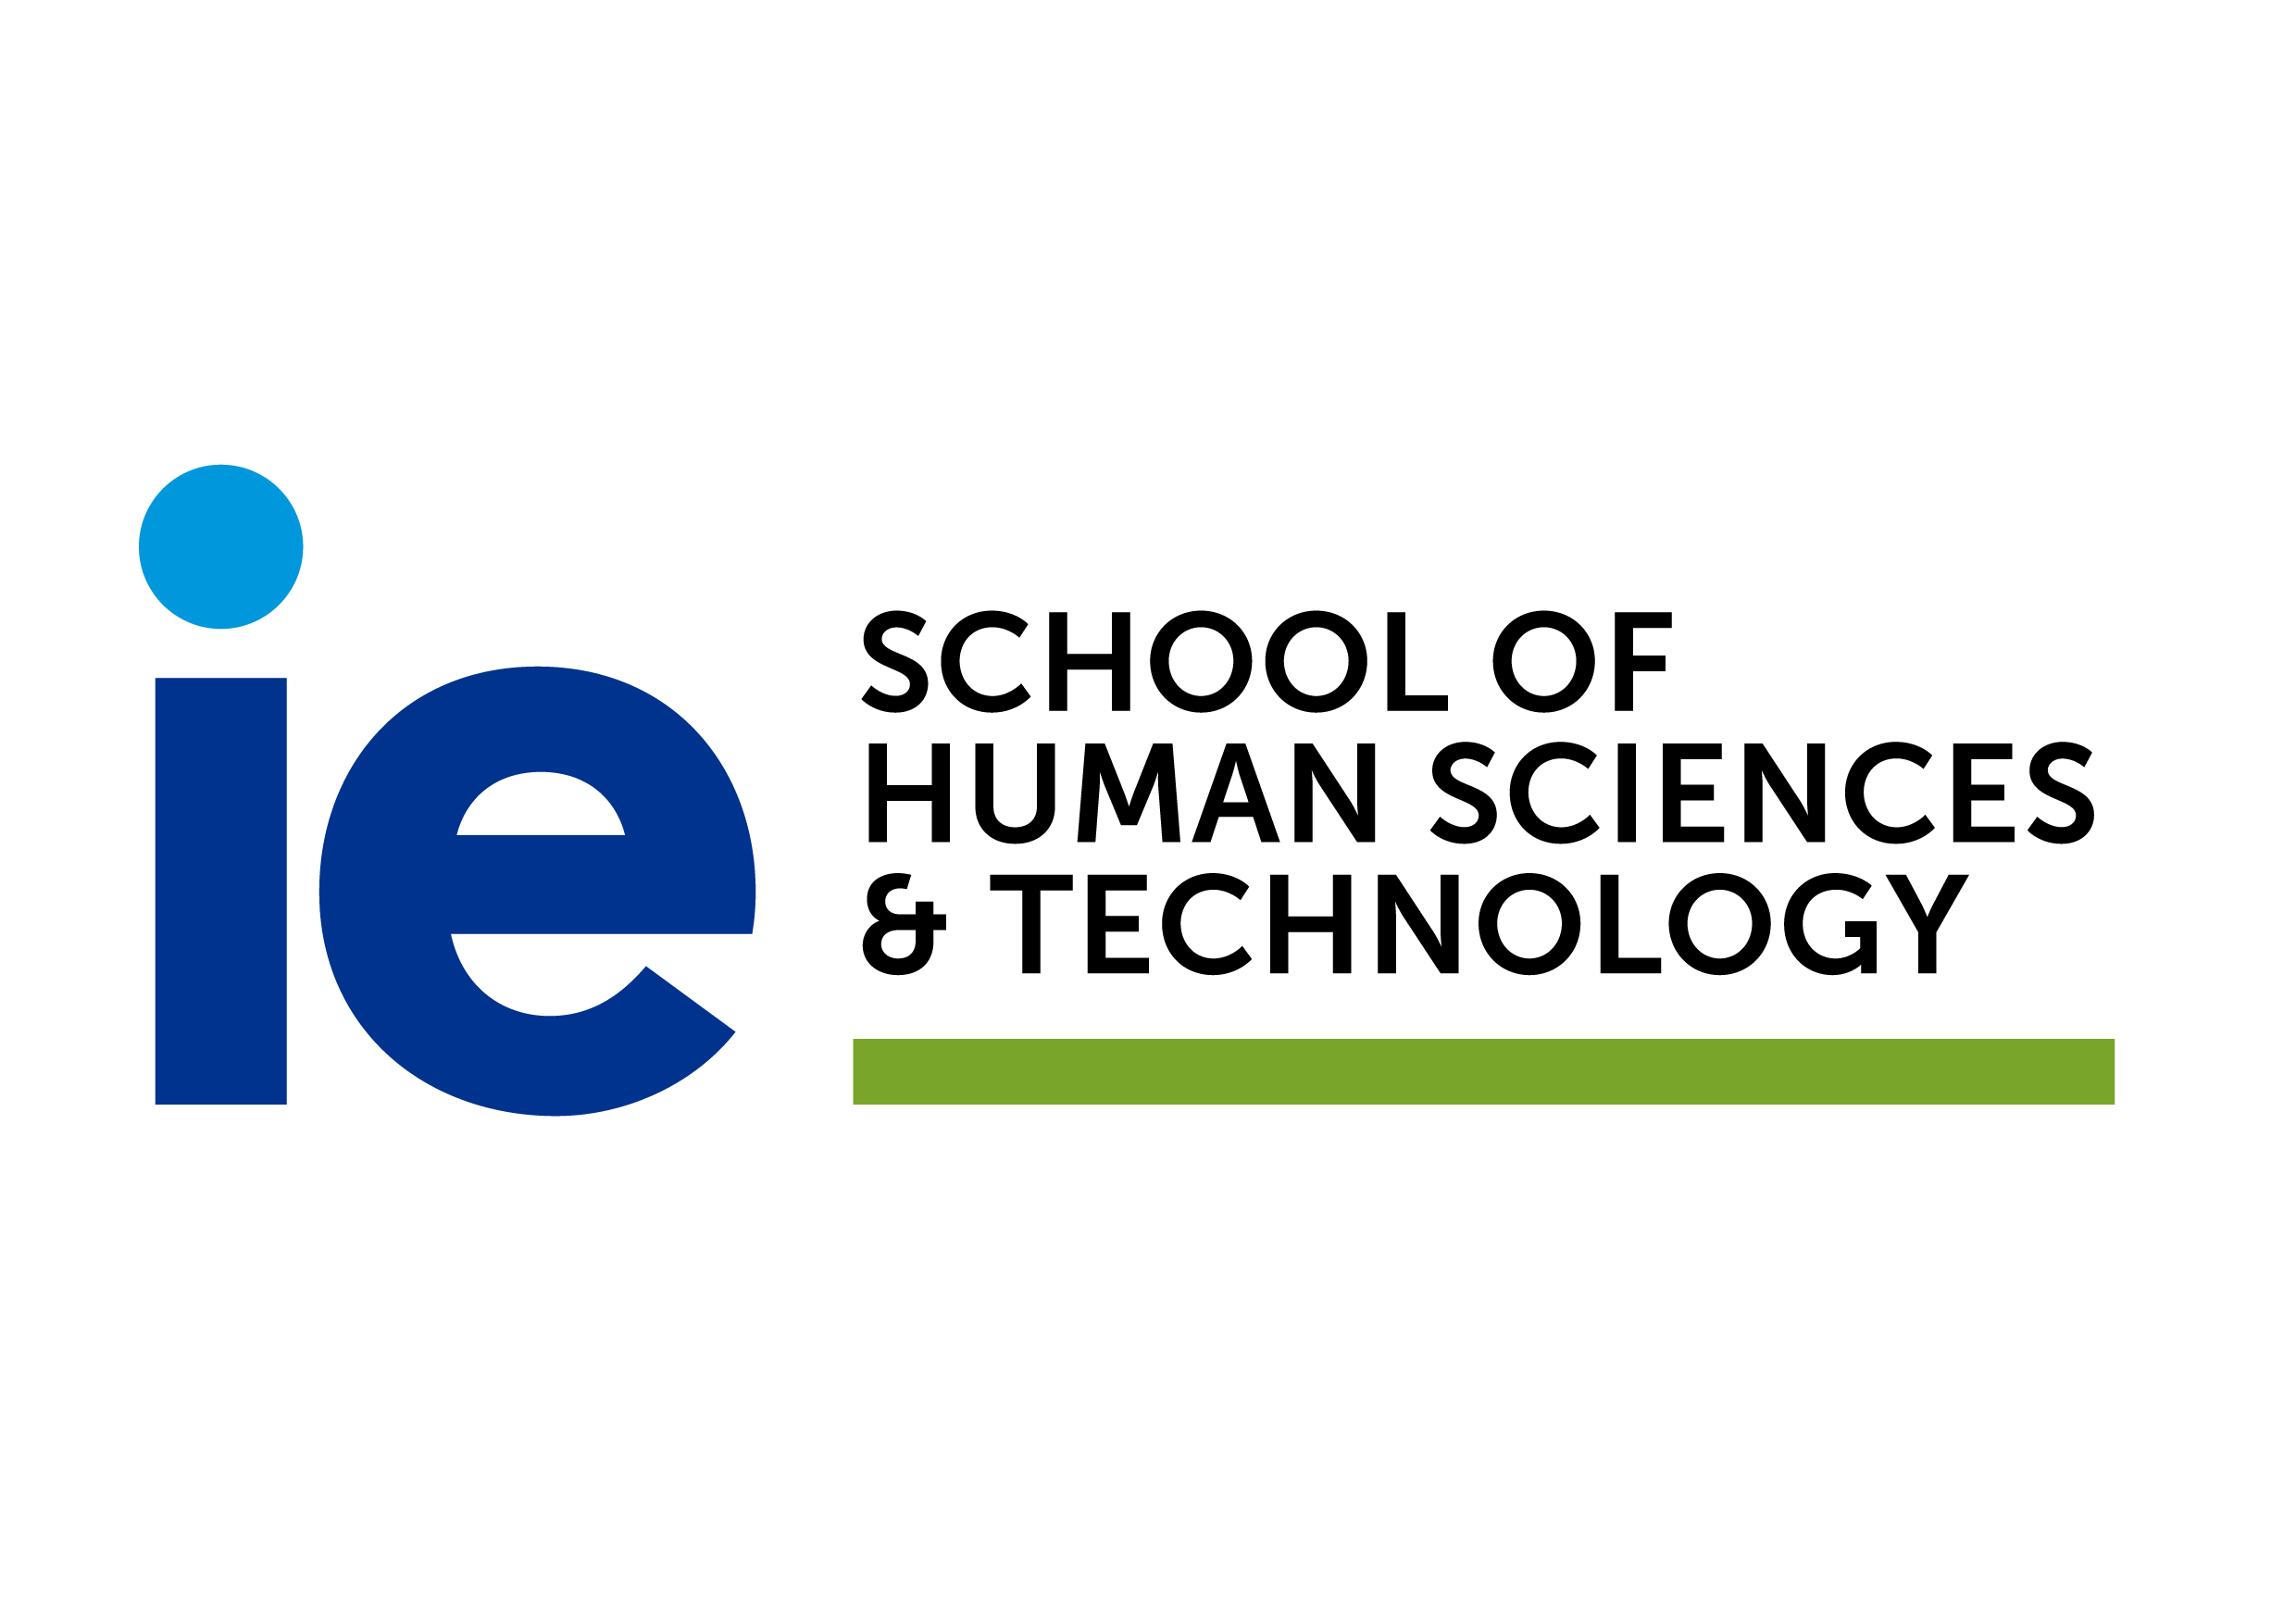 School of human sciences and technology